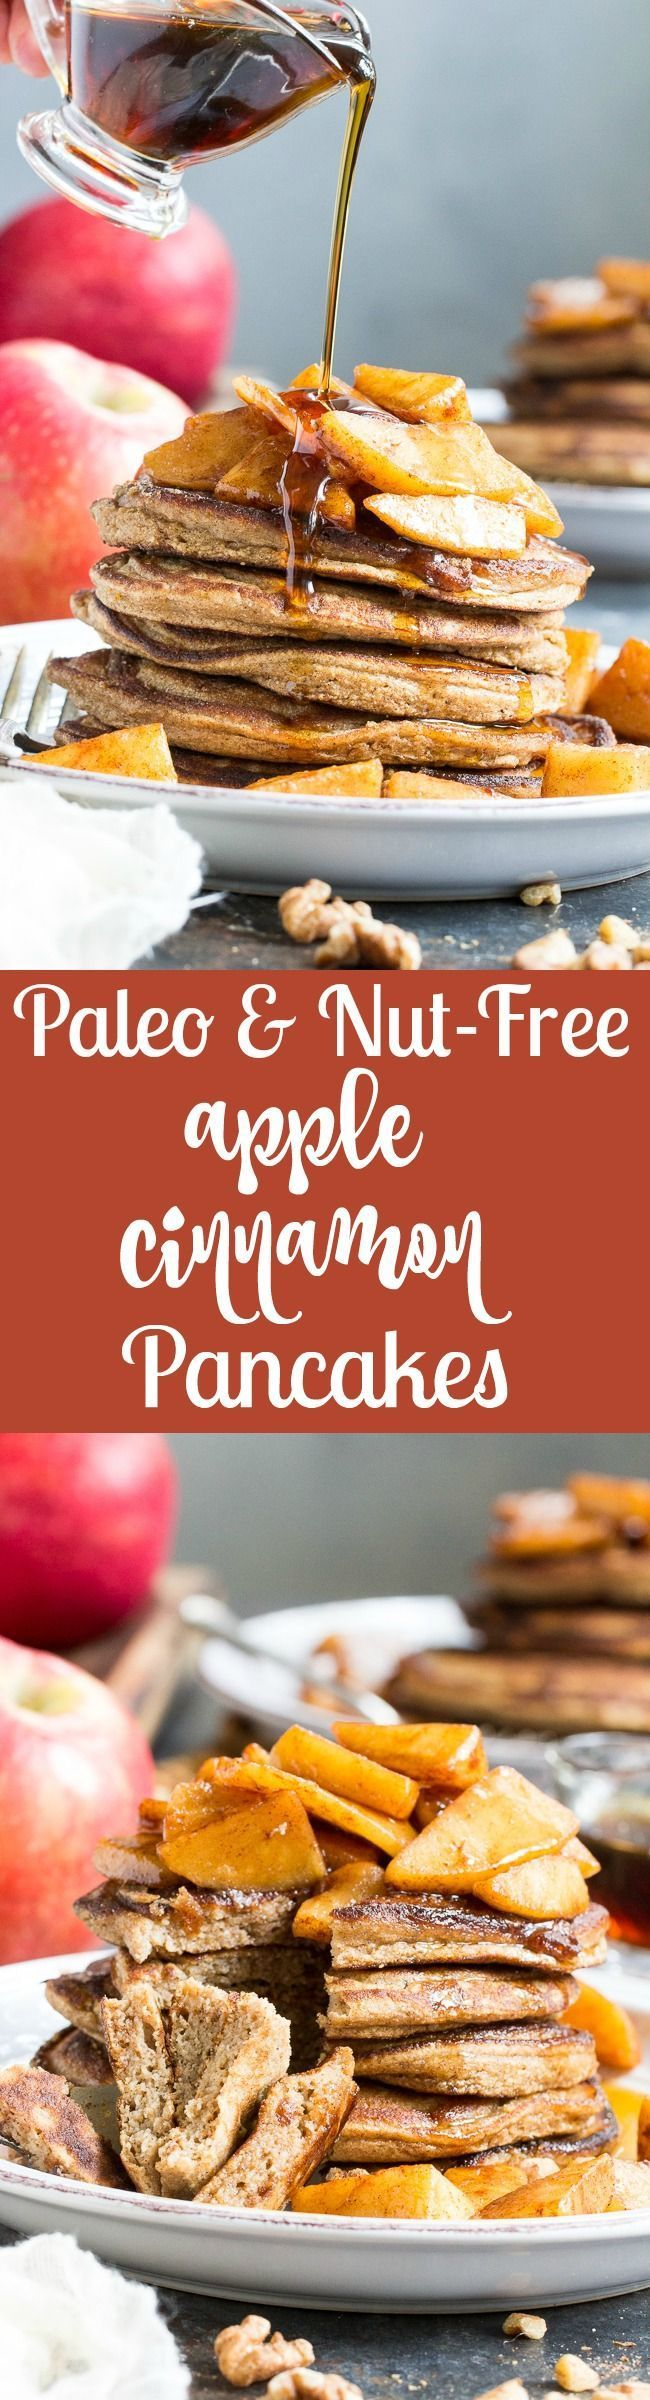 These Apple Cinnamon Paleo Pancakes combine a sweet, soft, perfectly fluffy coconut flour based pancake with a gooey cinnamon apple topping – yum!   One batch will feed the whole family and keep everyone warm and happy for breakfast on a cool fall morning.  Gluten free, dairy free, refined sugar free, nut free.